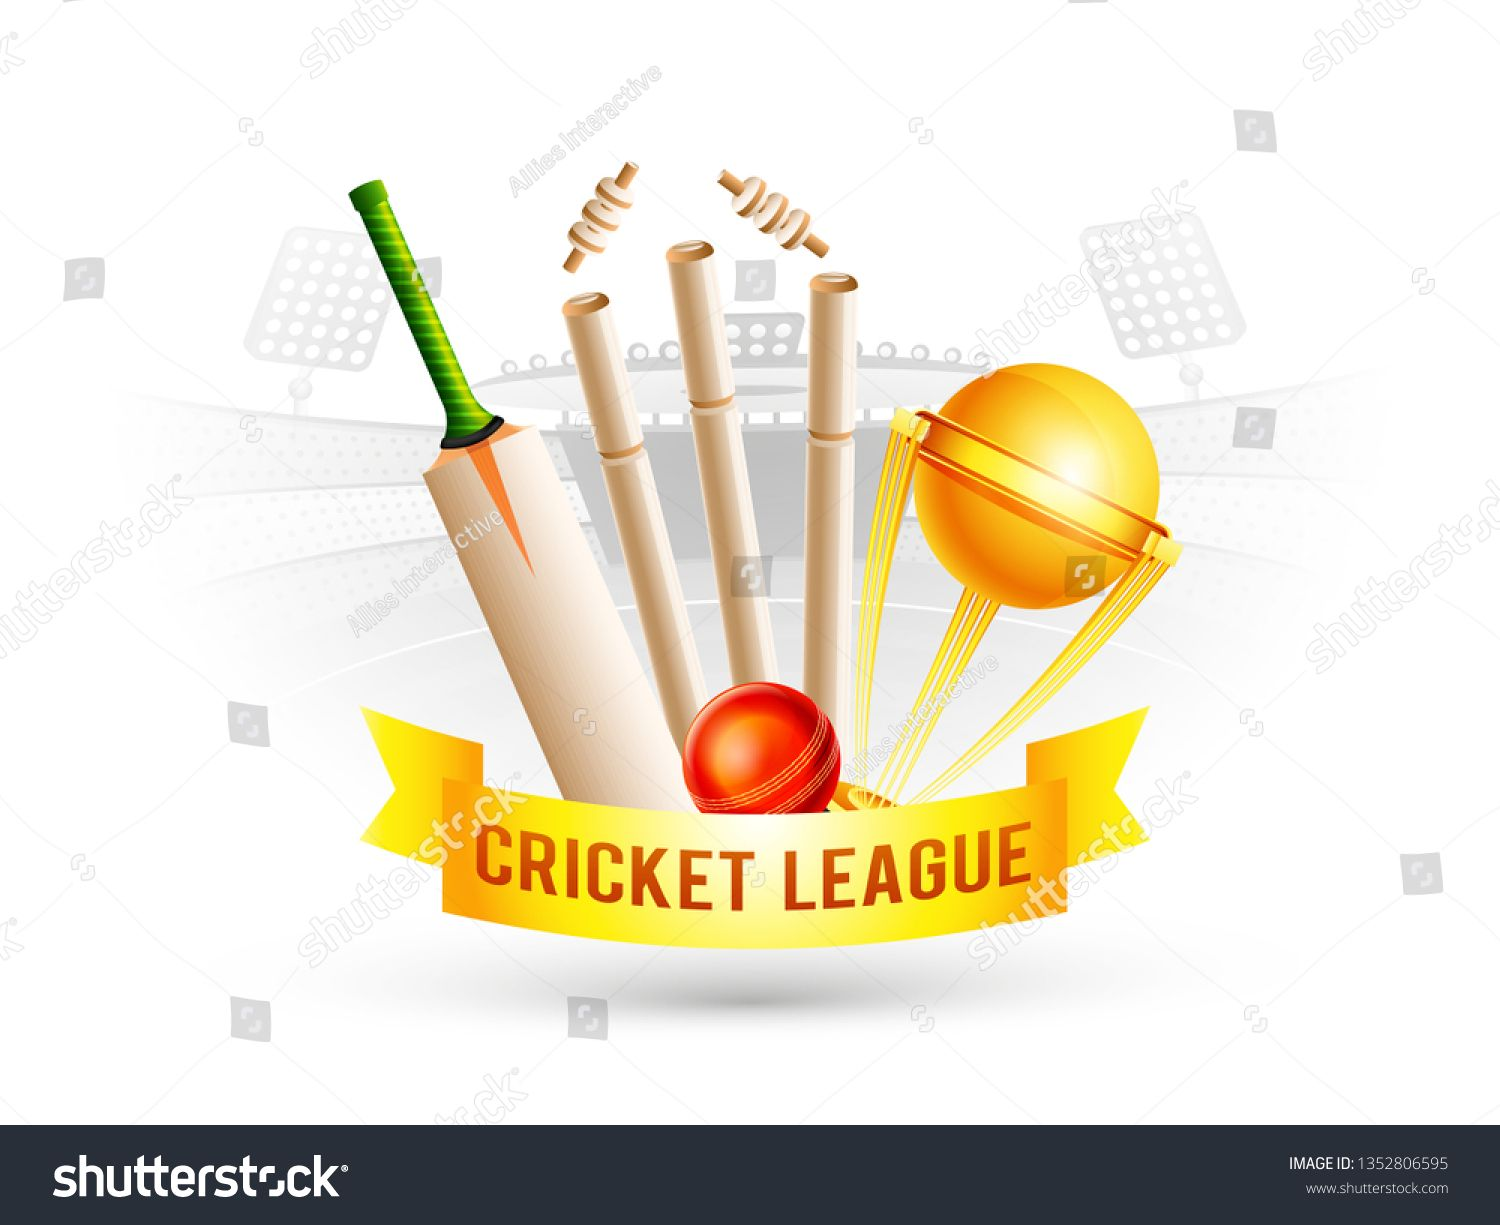 Realistic Golden Trophy Bat Ball And Stumps With Golden Ribbon For Cricket League On Stadium Silhouette Background Ad Abstract Design Name Plate Trophy